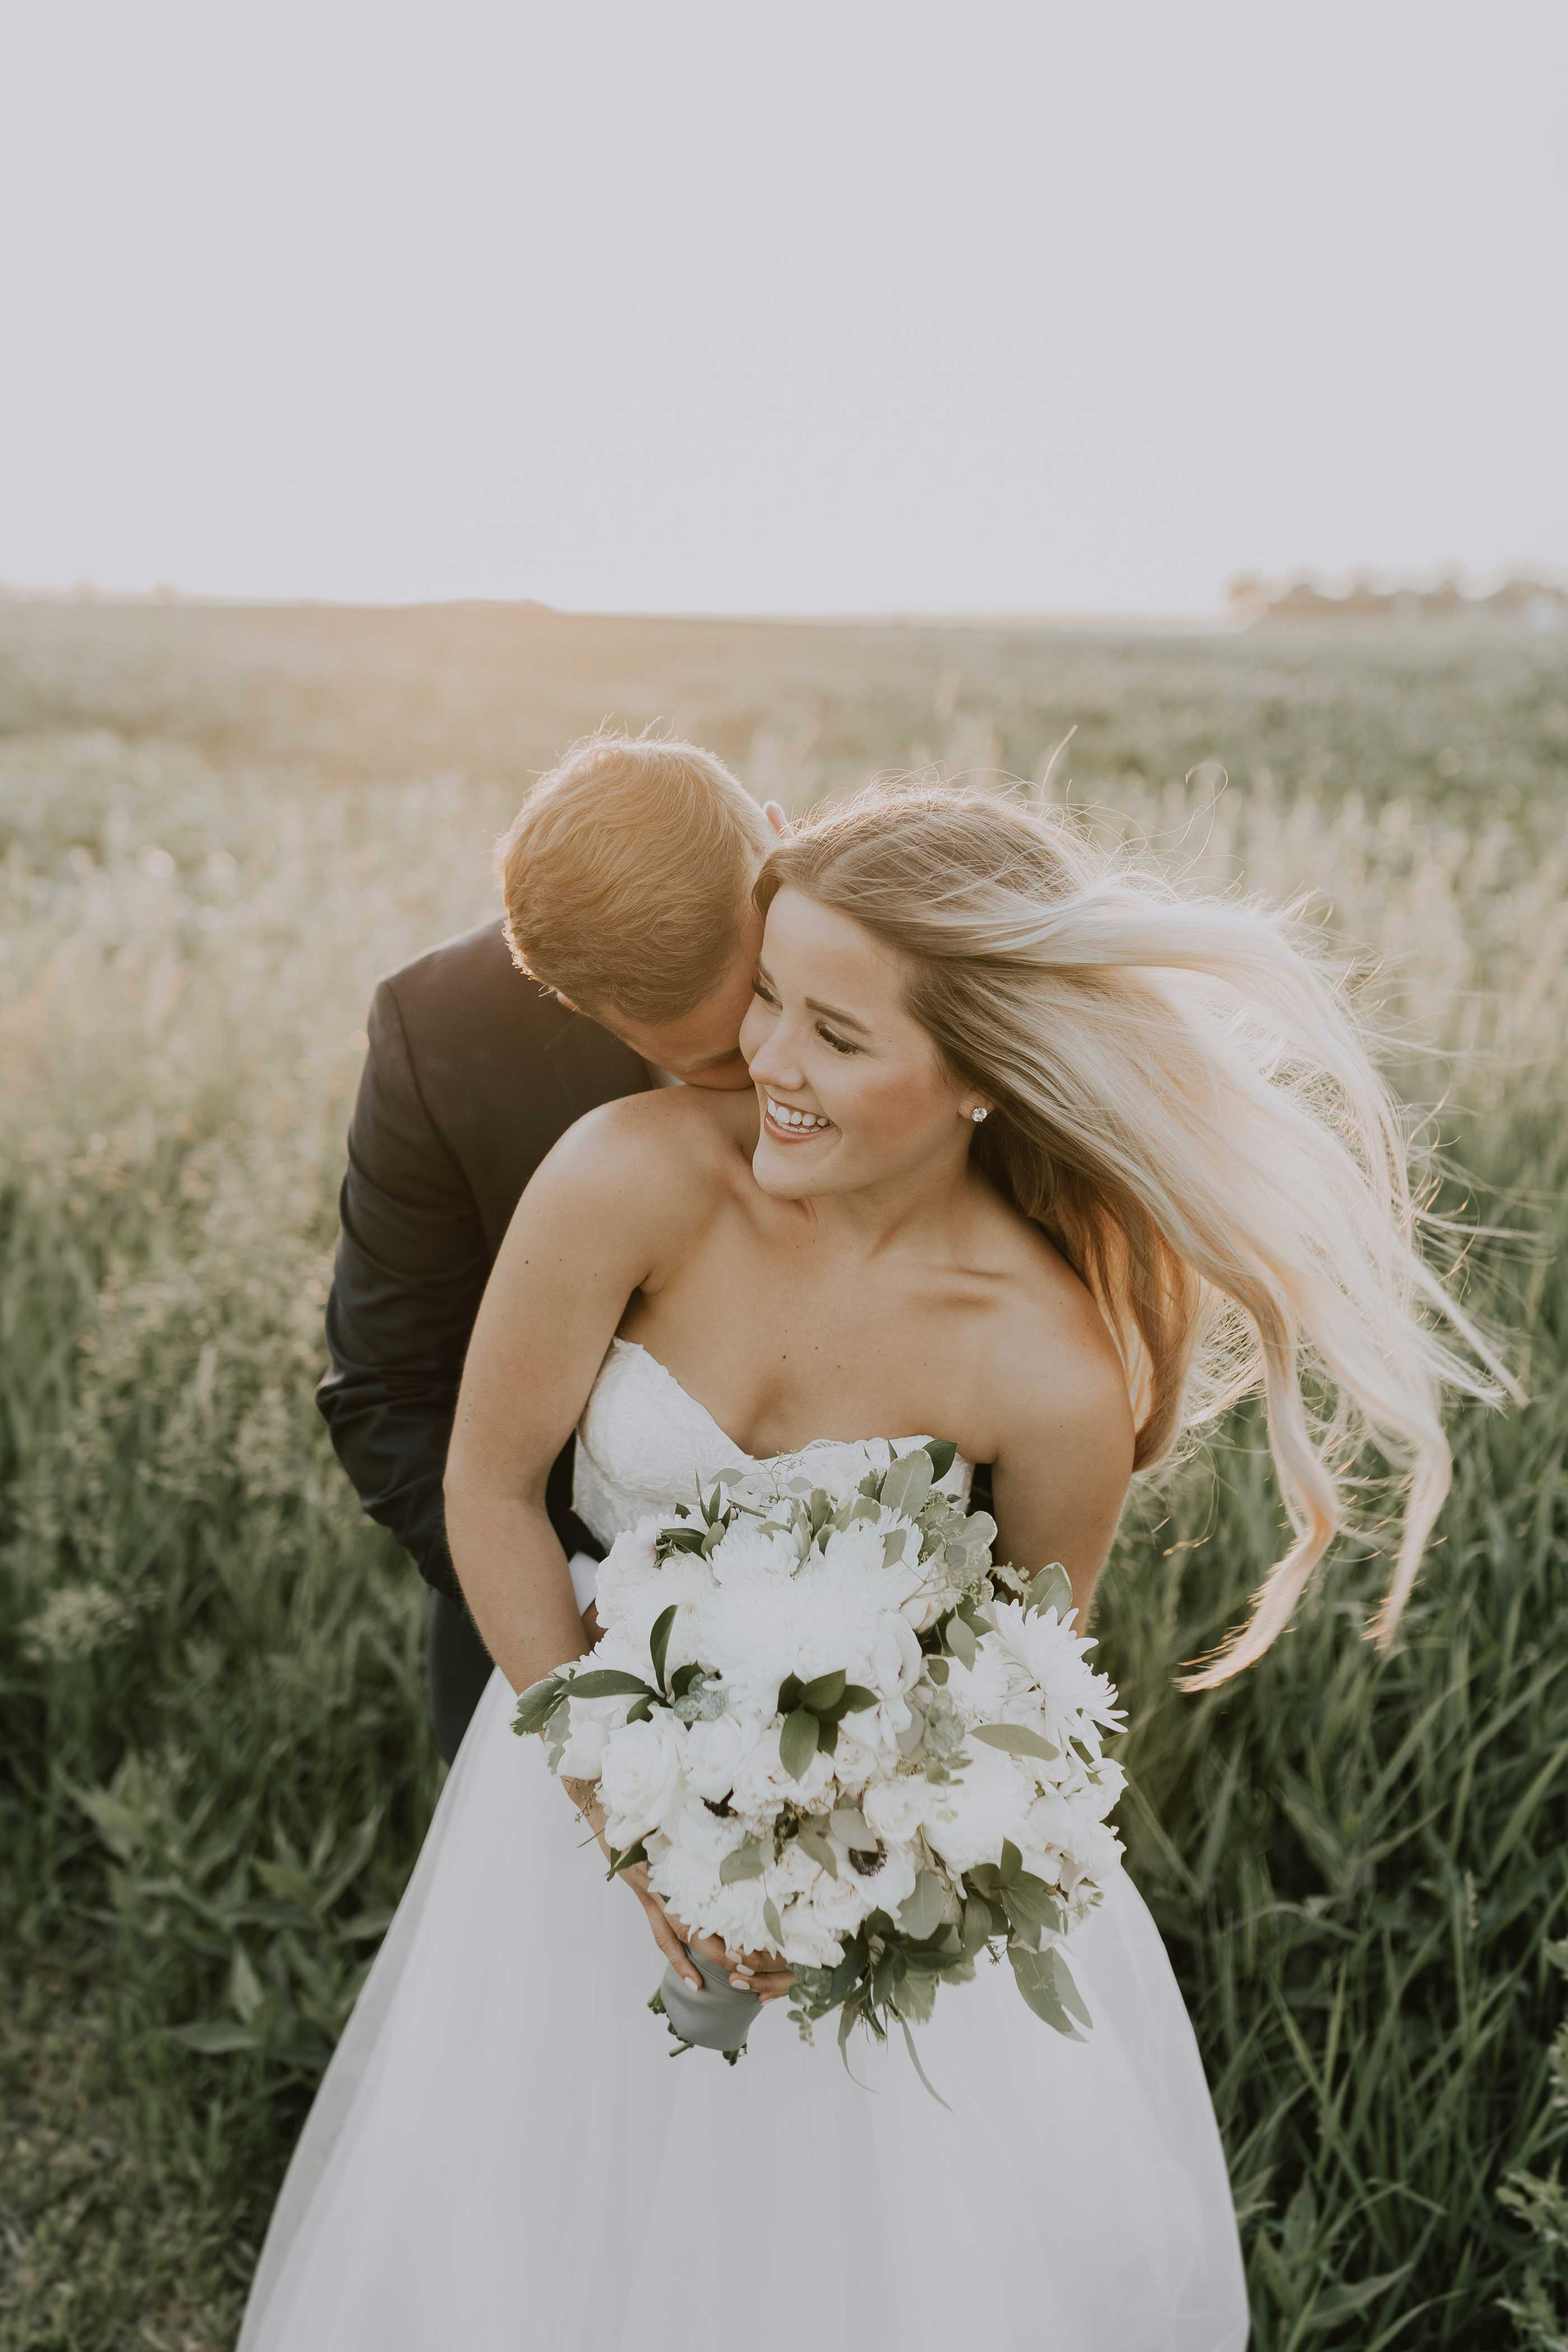 after-wedding-checklist-what-to-do-after-wedding-7